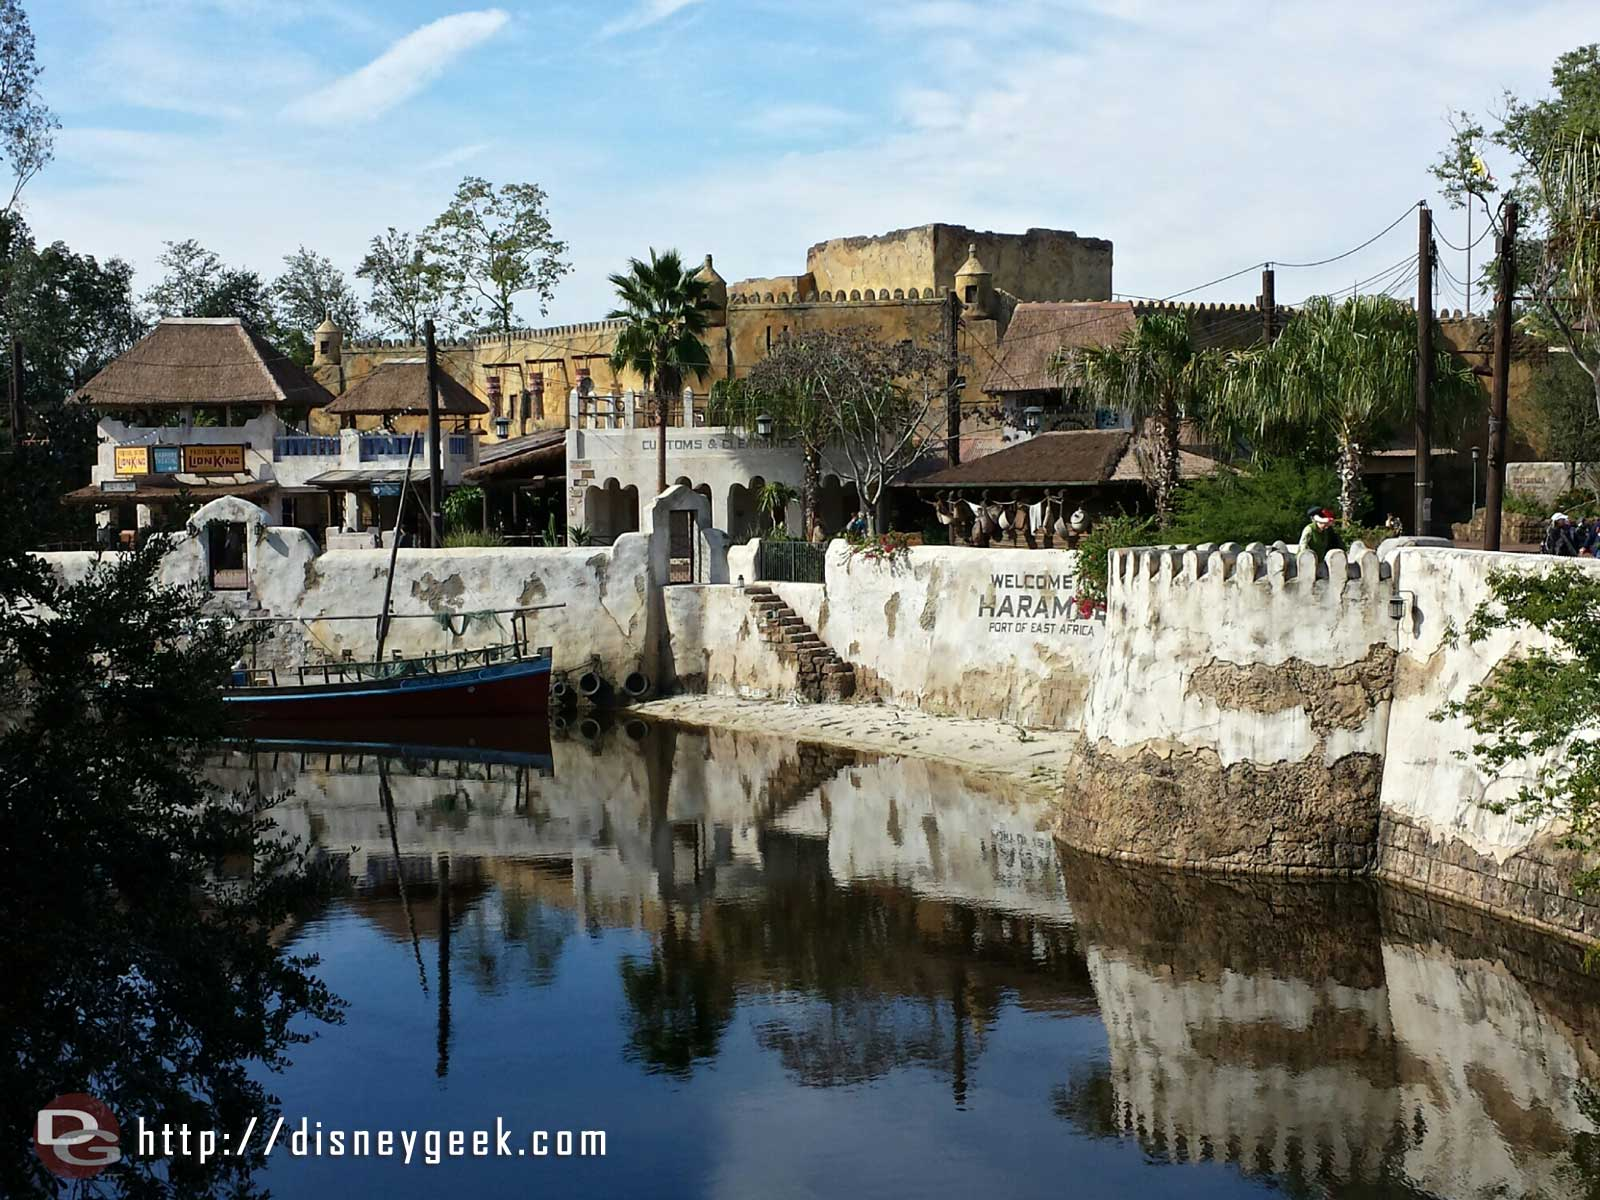 Looking toward the Harambe theatre from the bridge